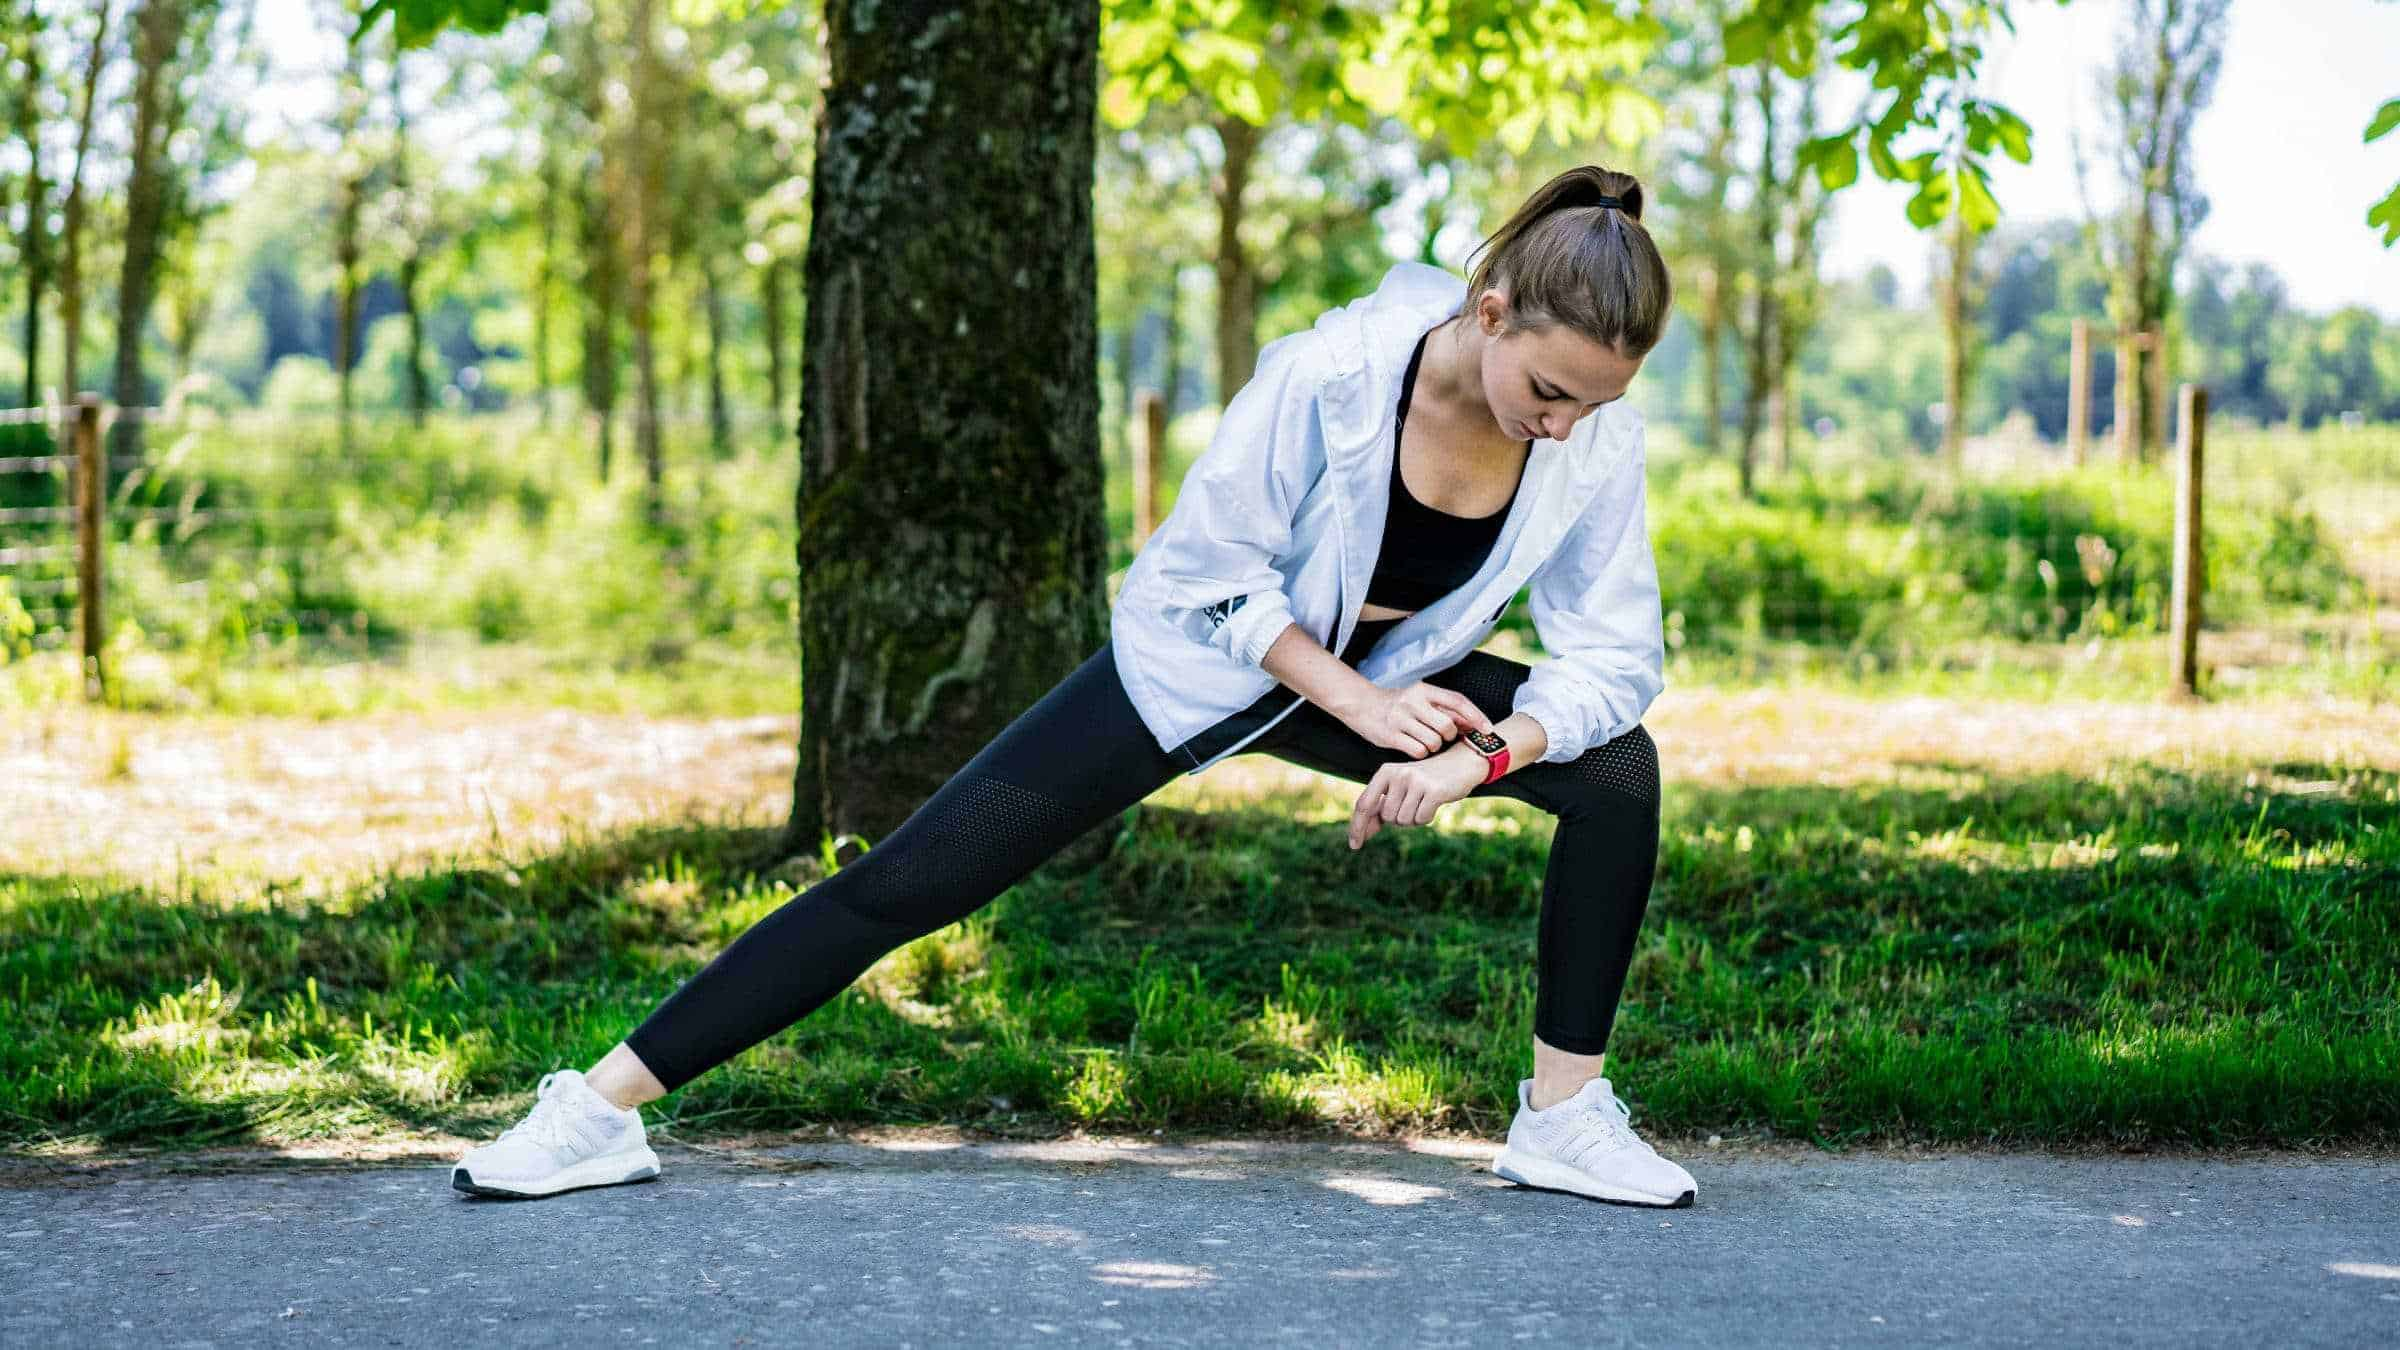 Daniela-Wildi-Stretching-Apple-Watch-Series-4